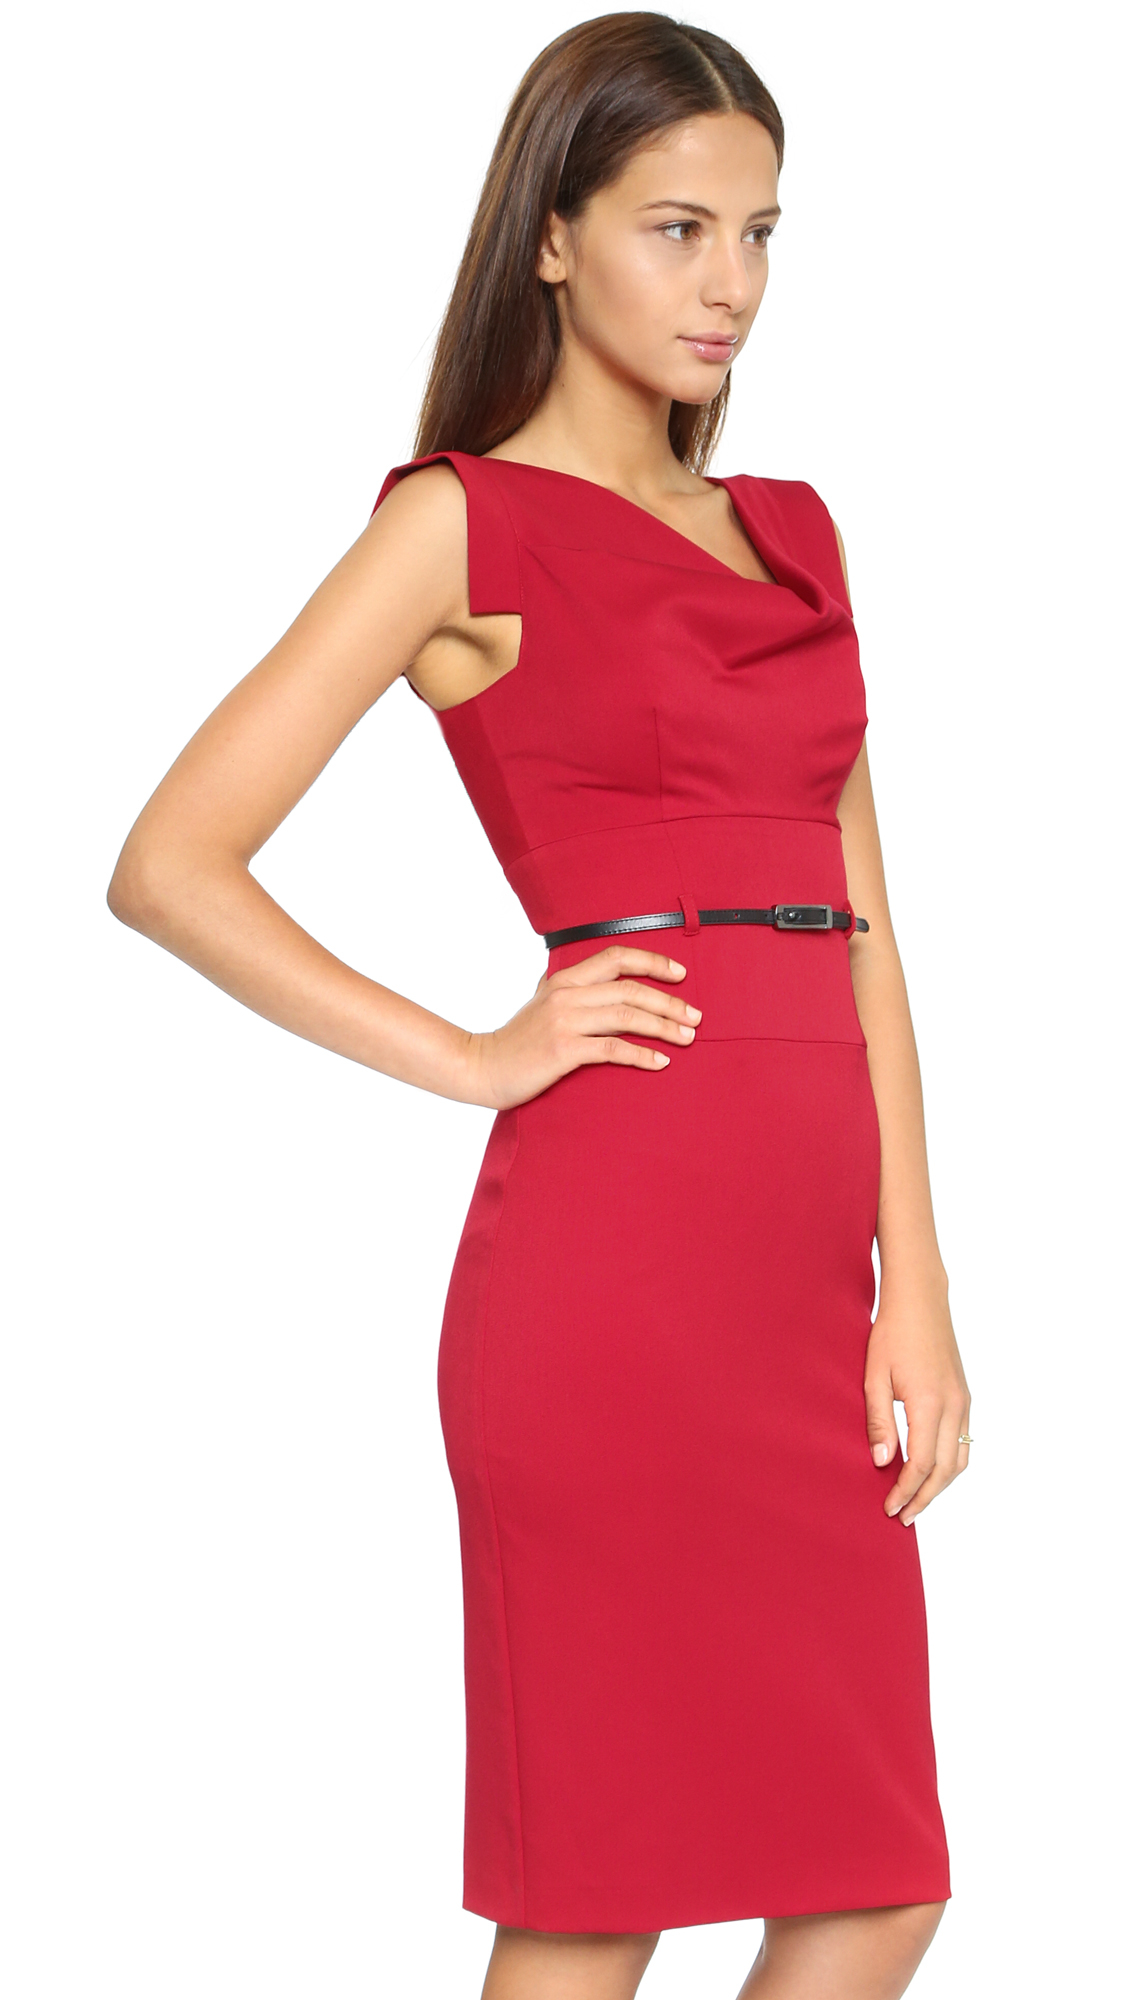 Black halo Jackie O Dress in Red  Lyst